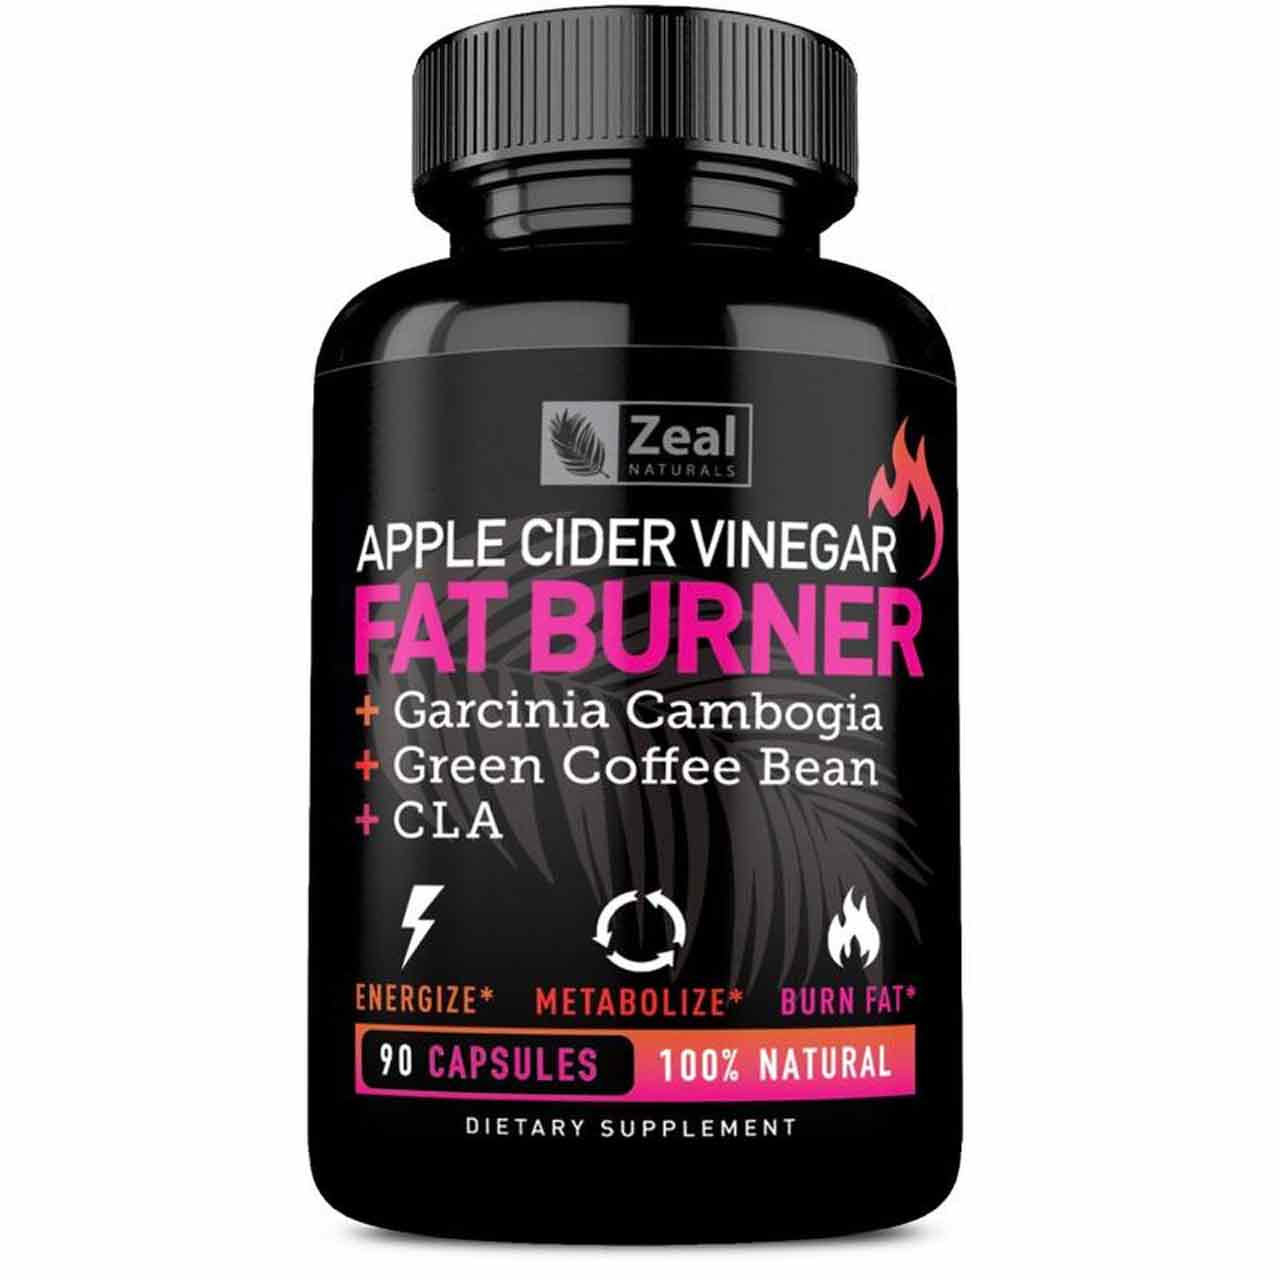 Zeal Naturals Apple Cider Vinegar Fat Burner